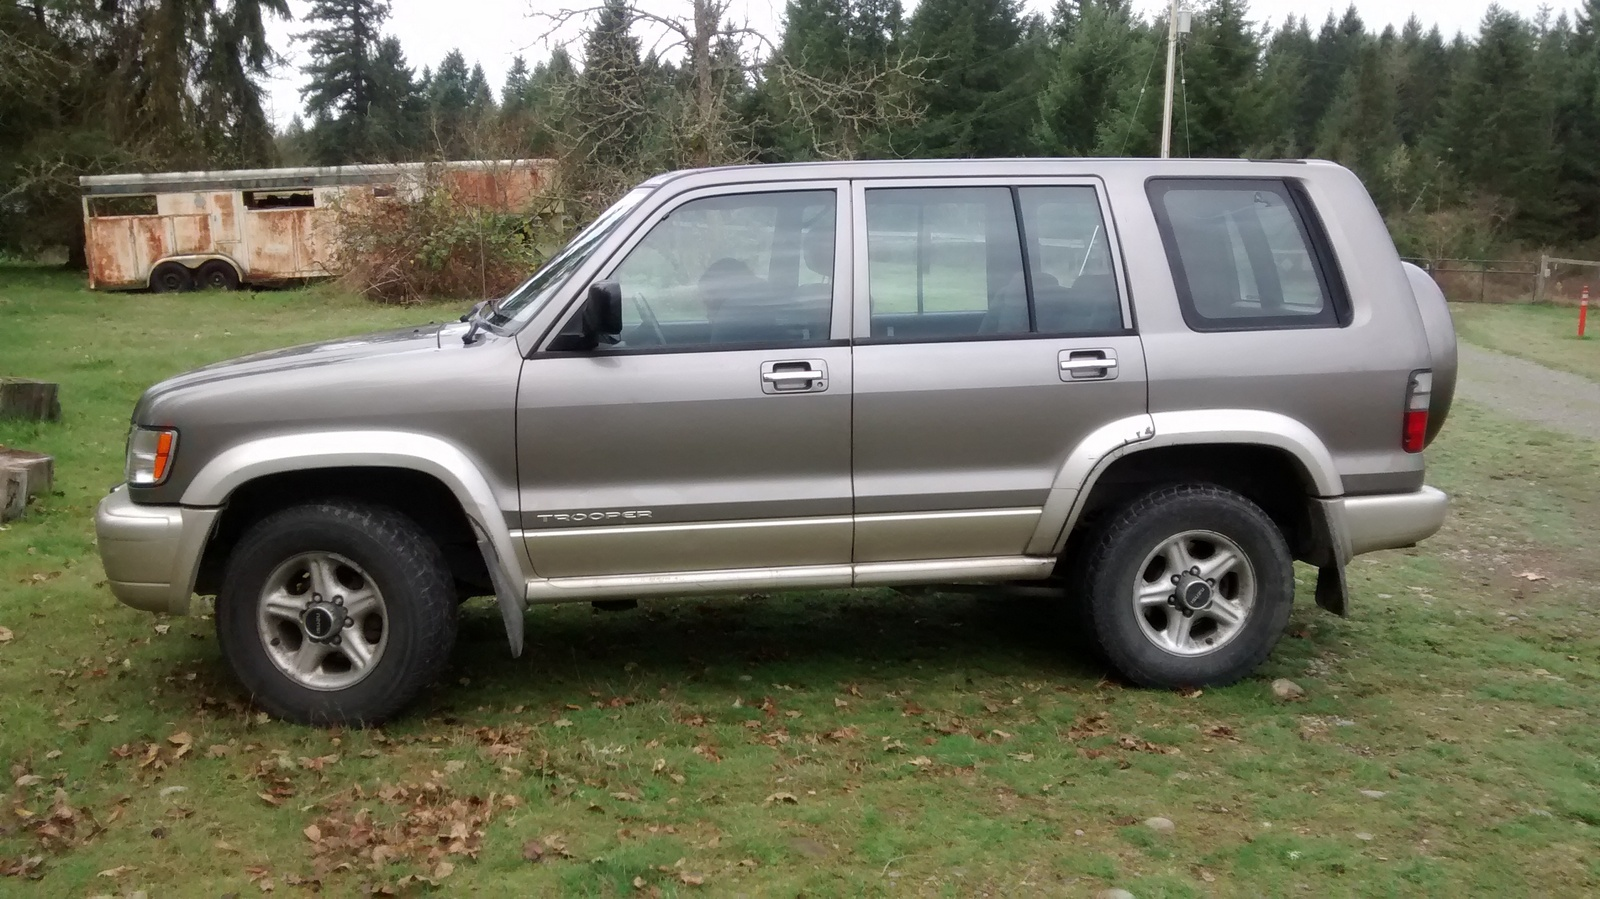 1996 02 Toyota 4runner as well 2002 Ford Explorer XLS Pictures T11900 pi12347220 besides 2002 Ford Explorer Pictures C144 pi35868039 in addition 1993 Jeep Cherokee Fuse Box Diagram additionally Transmission. on 1997 jeep cherokee sport interior